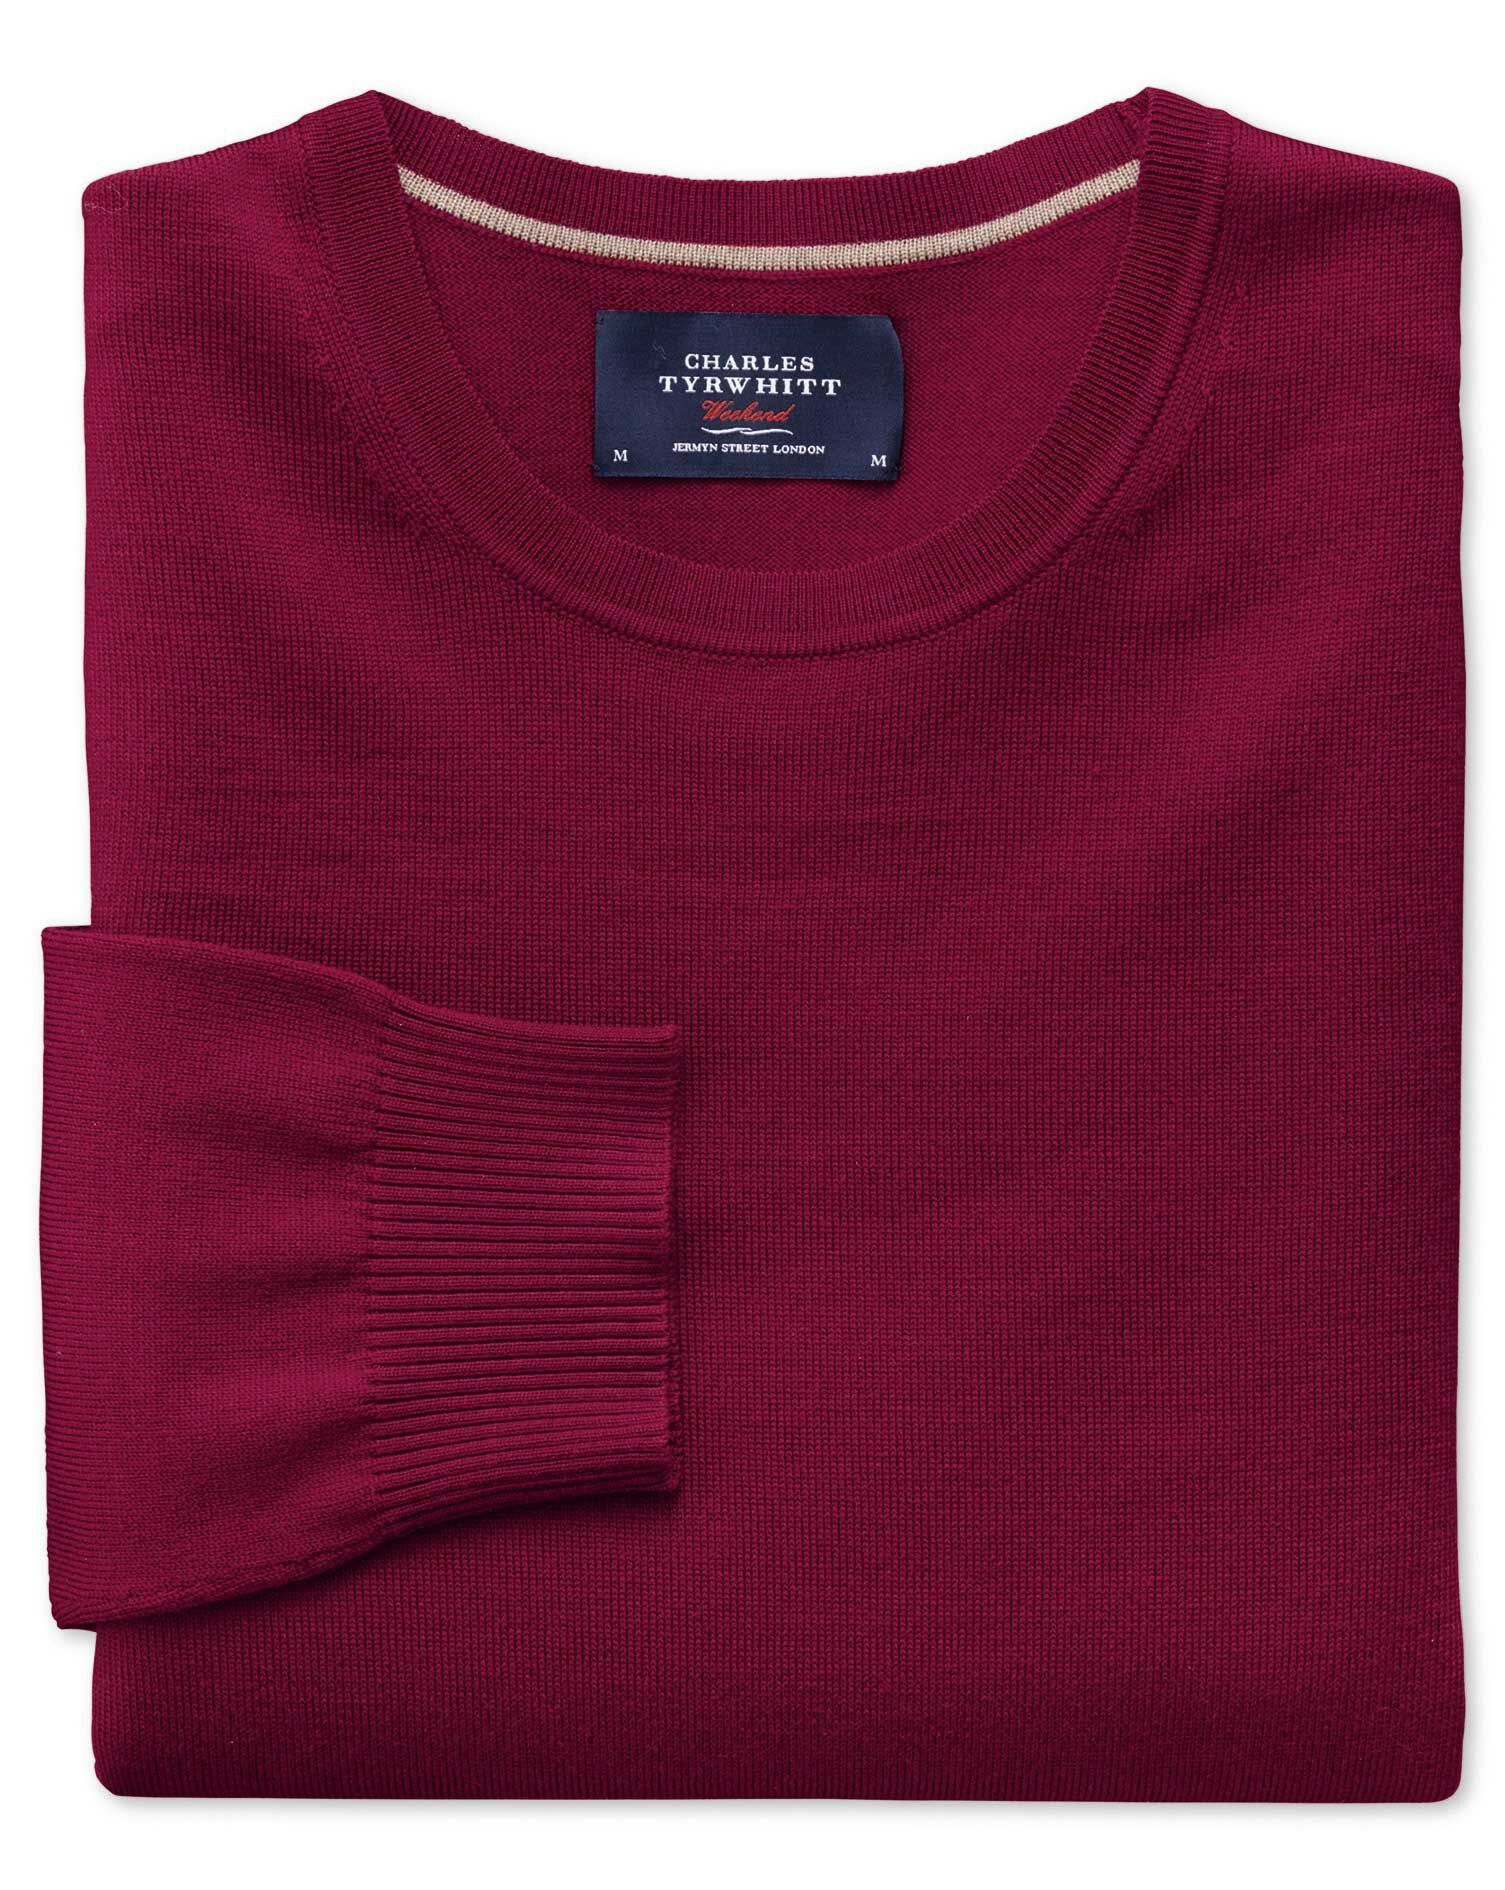 Dark Red Merino Wool Crew Neck Jumper Size Medium by Charles Tyrwhitt